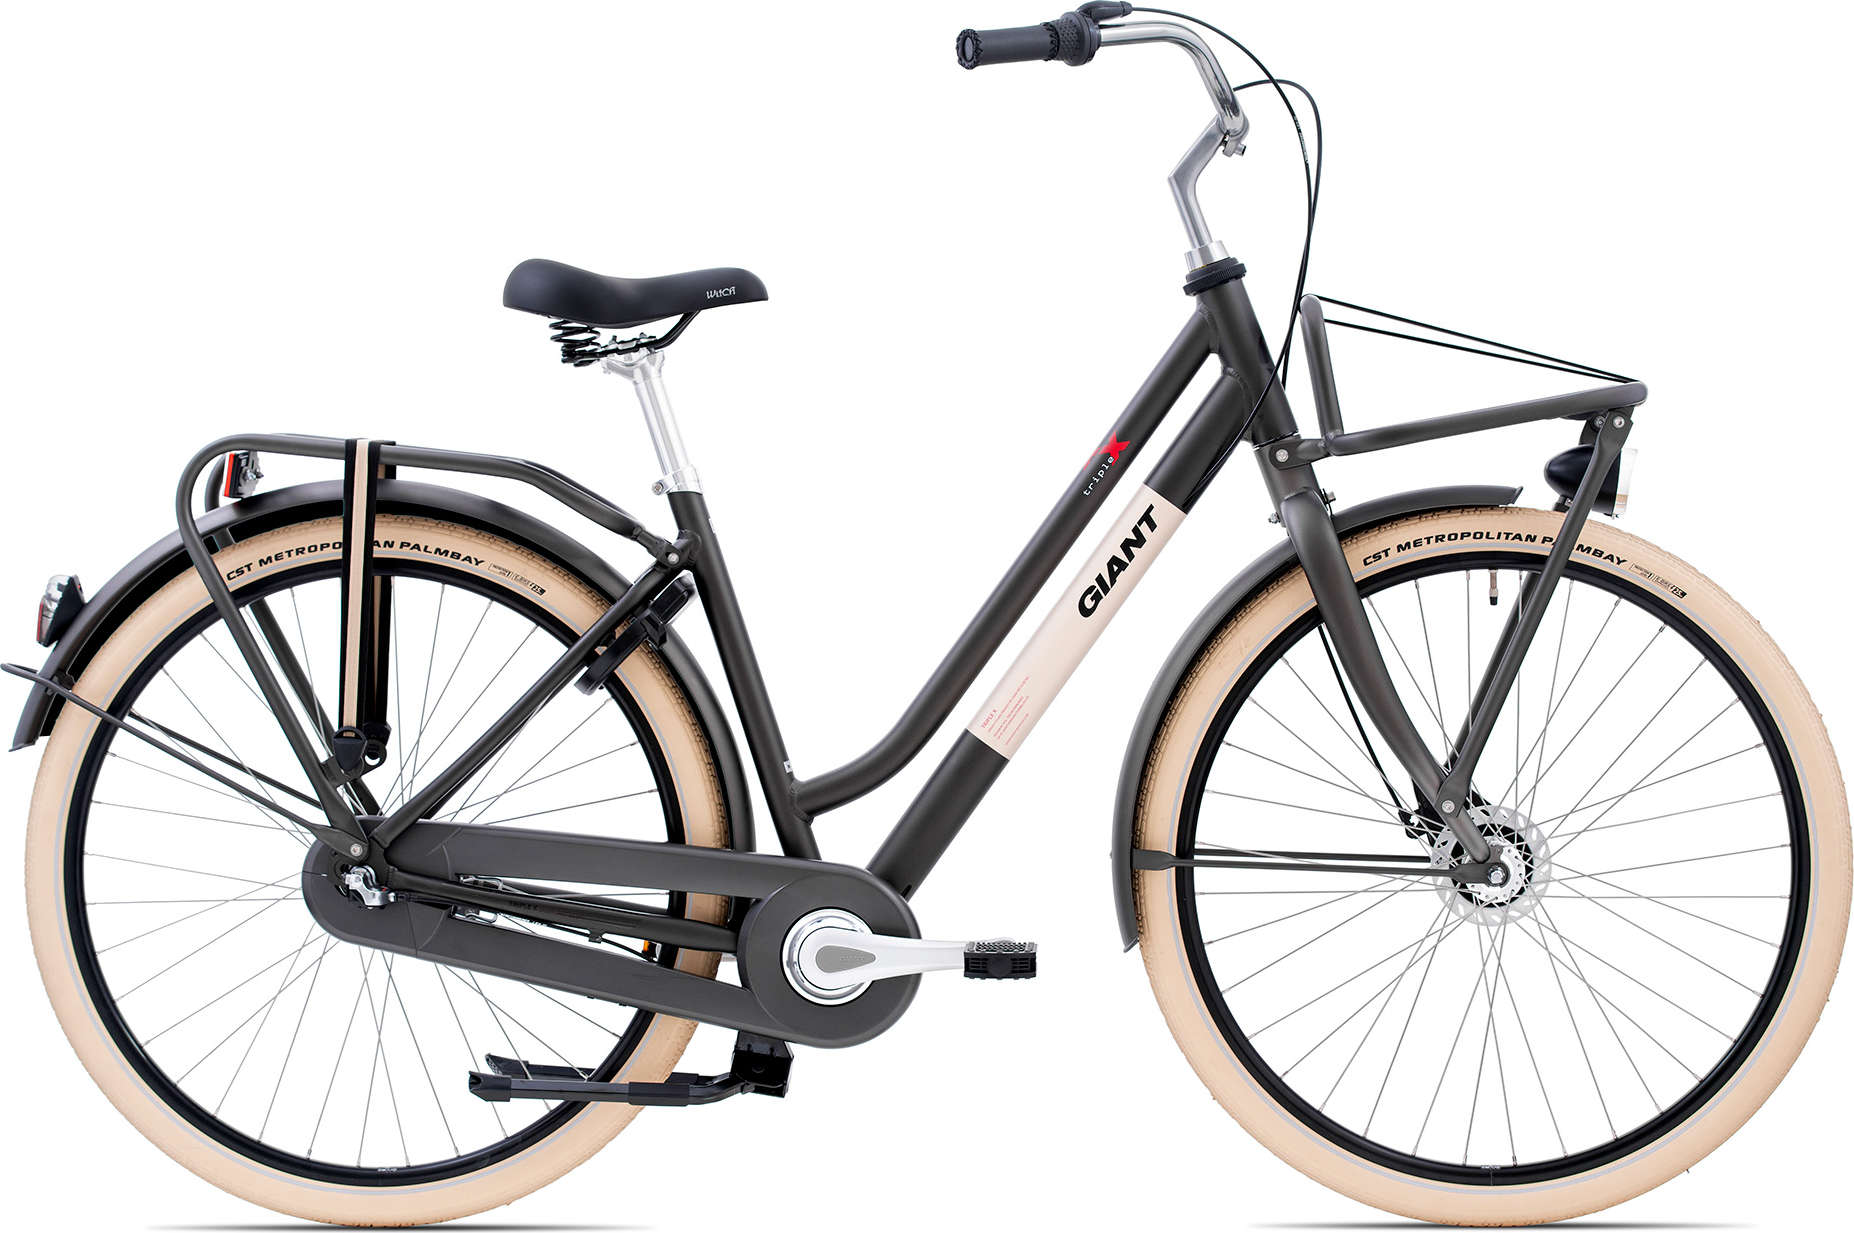 Giant Triple X 2 Heren en Dames 2020 bij Fiets Shopping Centre